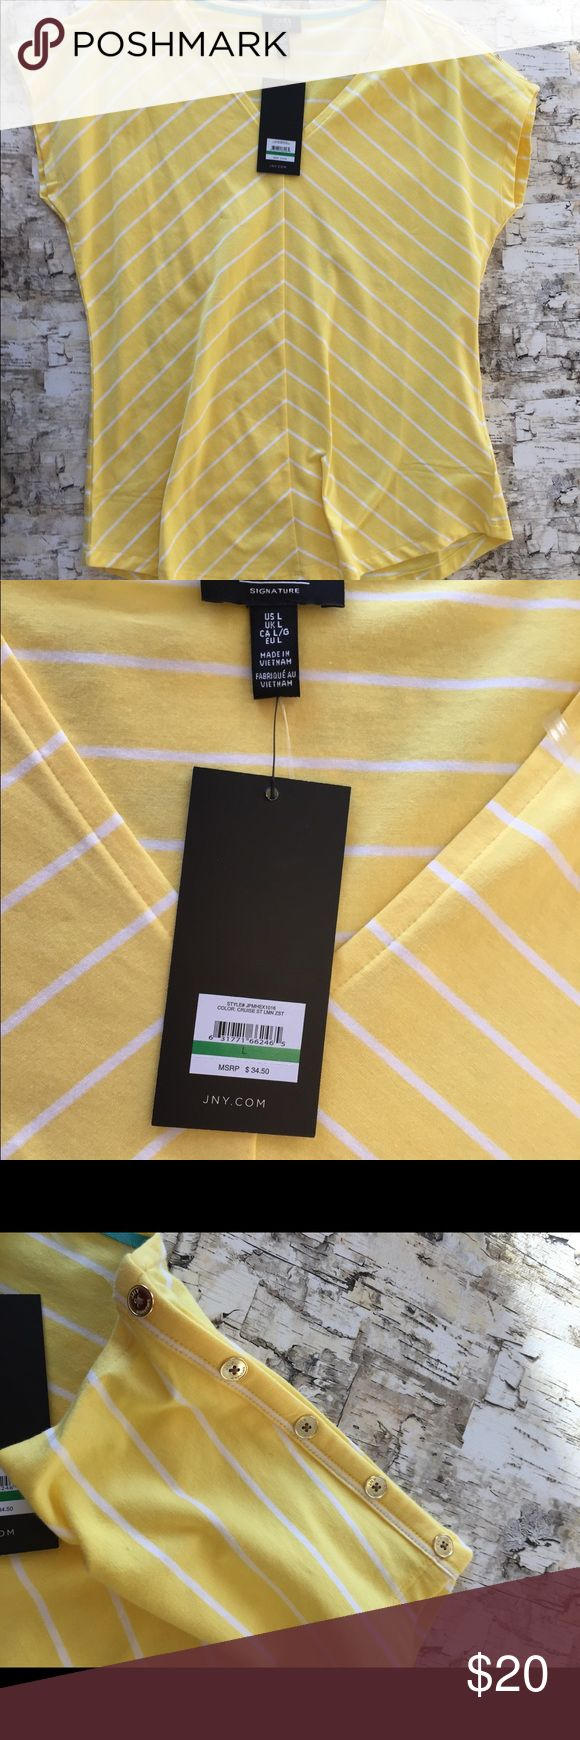 Jones New York tee Yellow and white. Is more of a lemon color vs what pics show. Gold buttons adorn sleeve on one side. New with tags. Available in other sizes too...will update listing with other sizes soon, or please inquire about the size(s) you want.:) Jones New York Tops